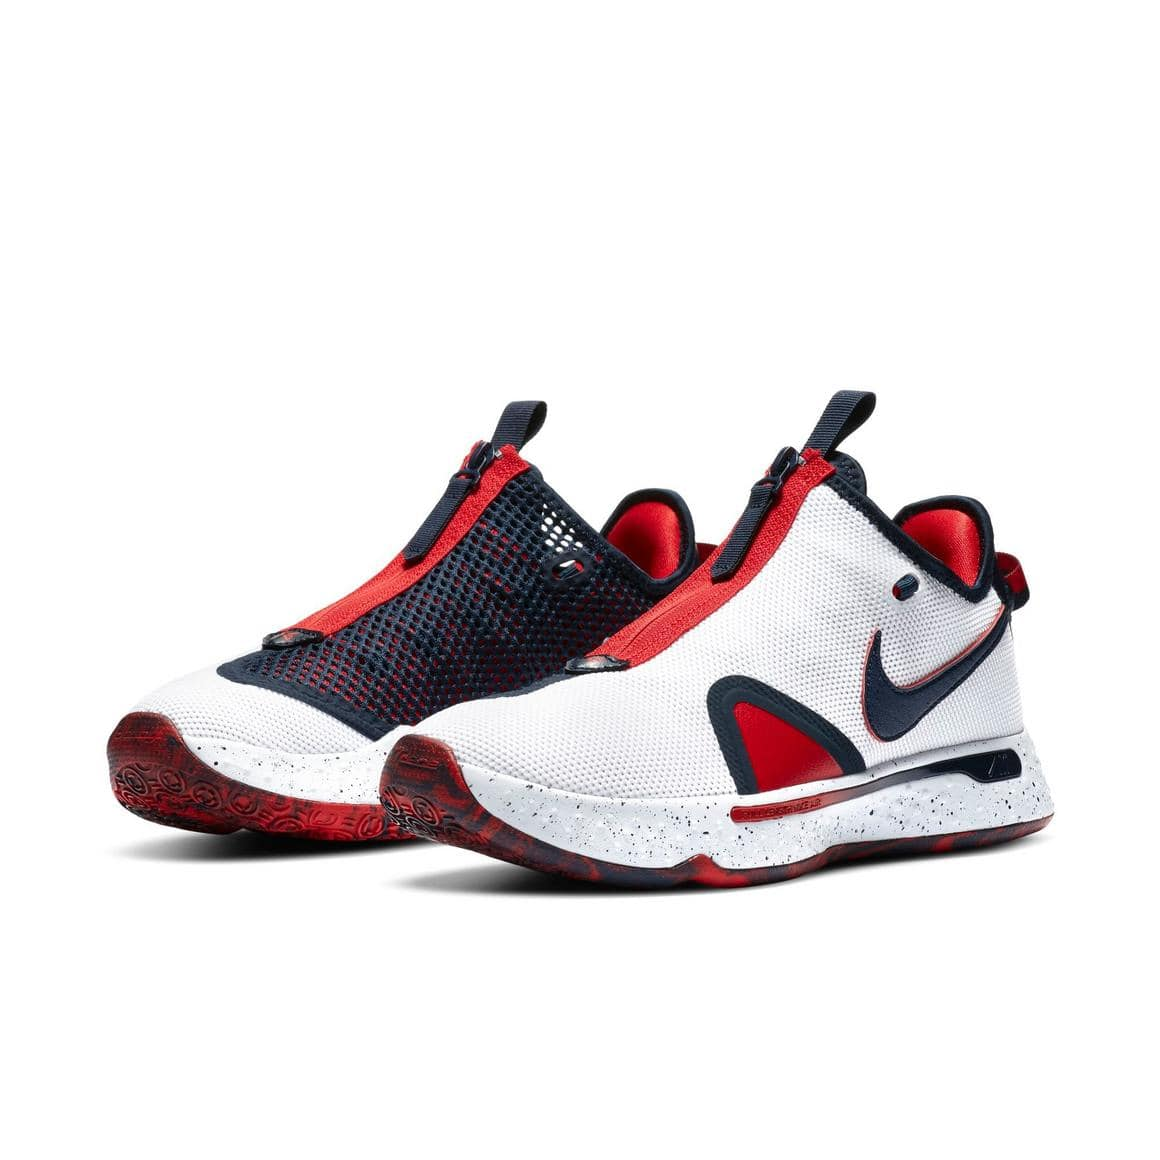 $56 + 7 Shipping Nike PG4 Peter George Basketball Shoes (another color for $53 + free shipping)